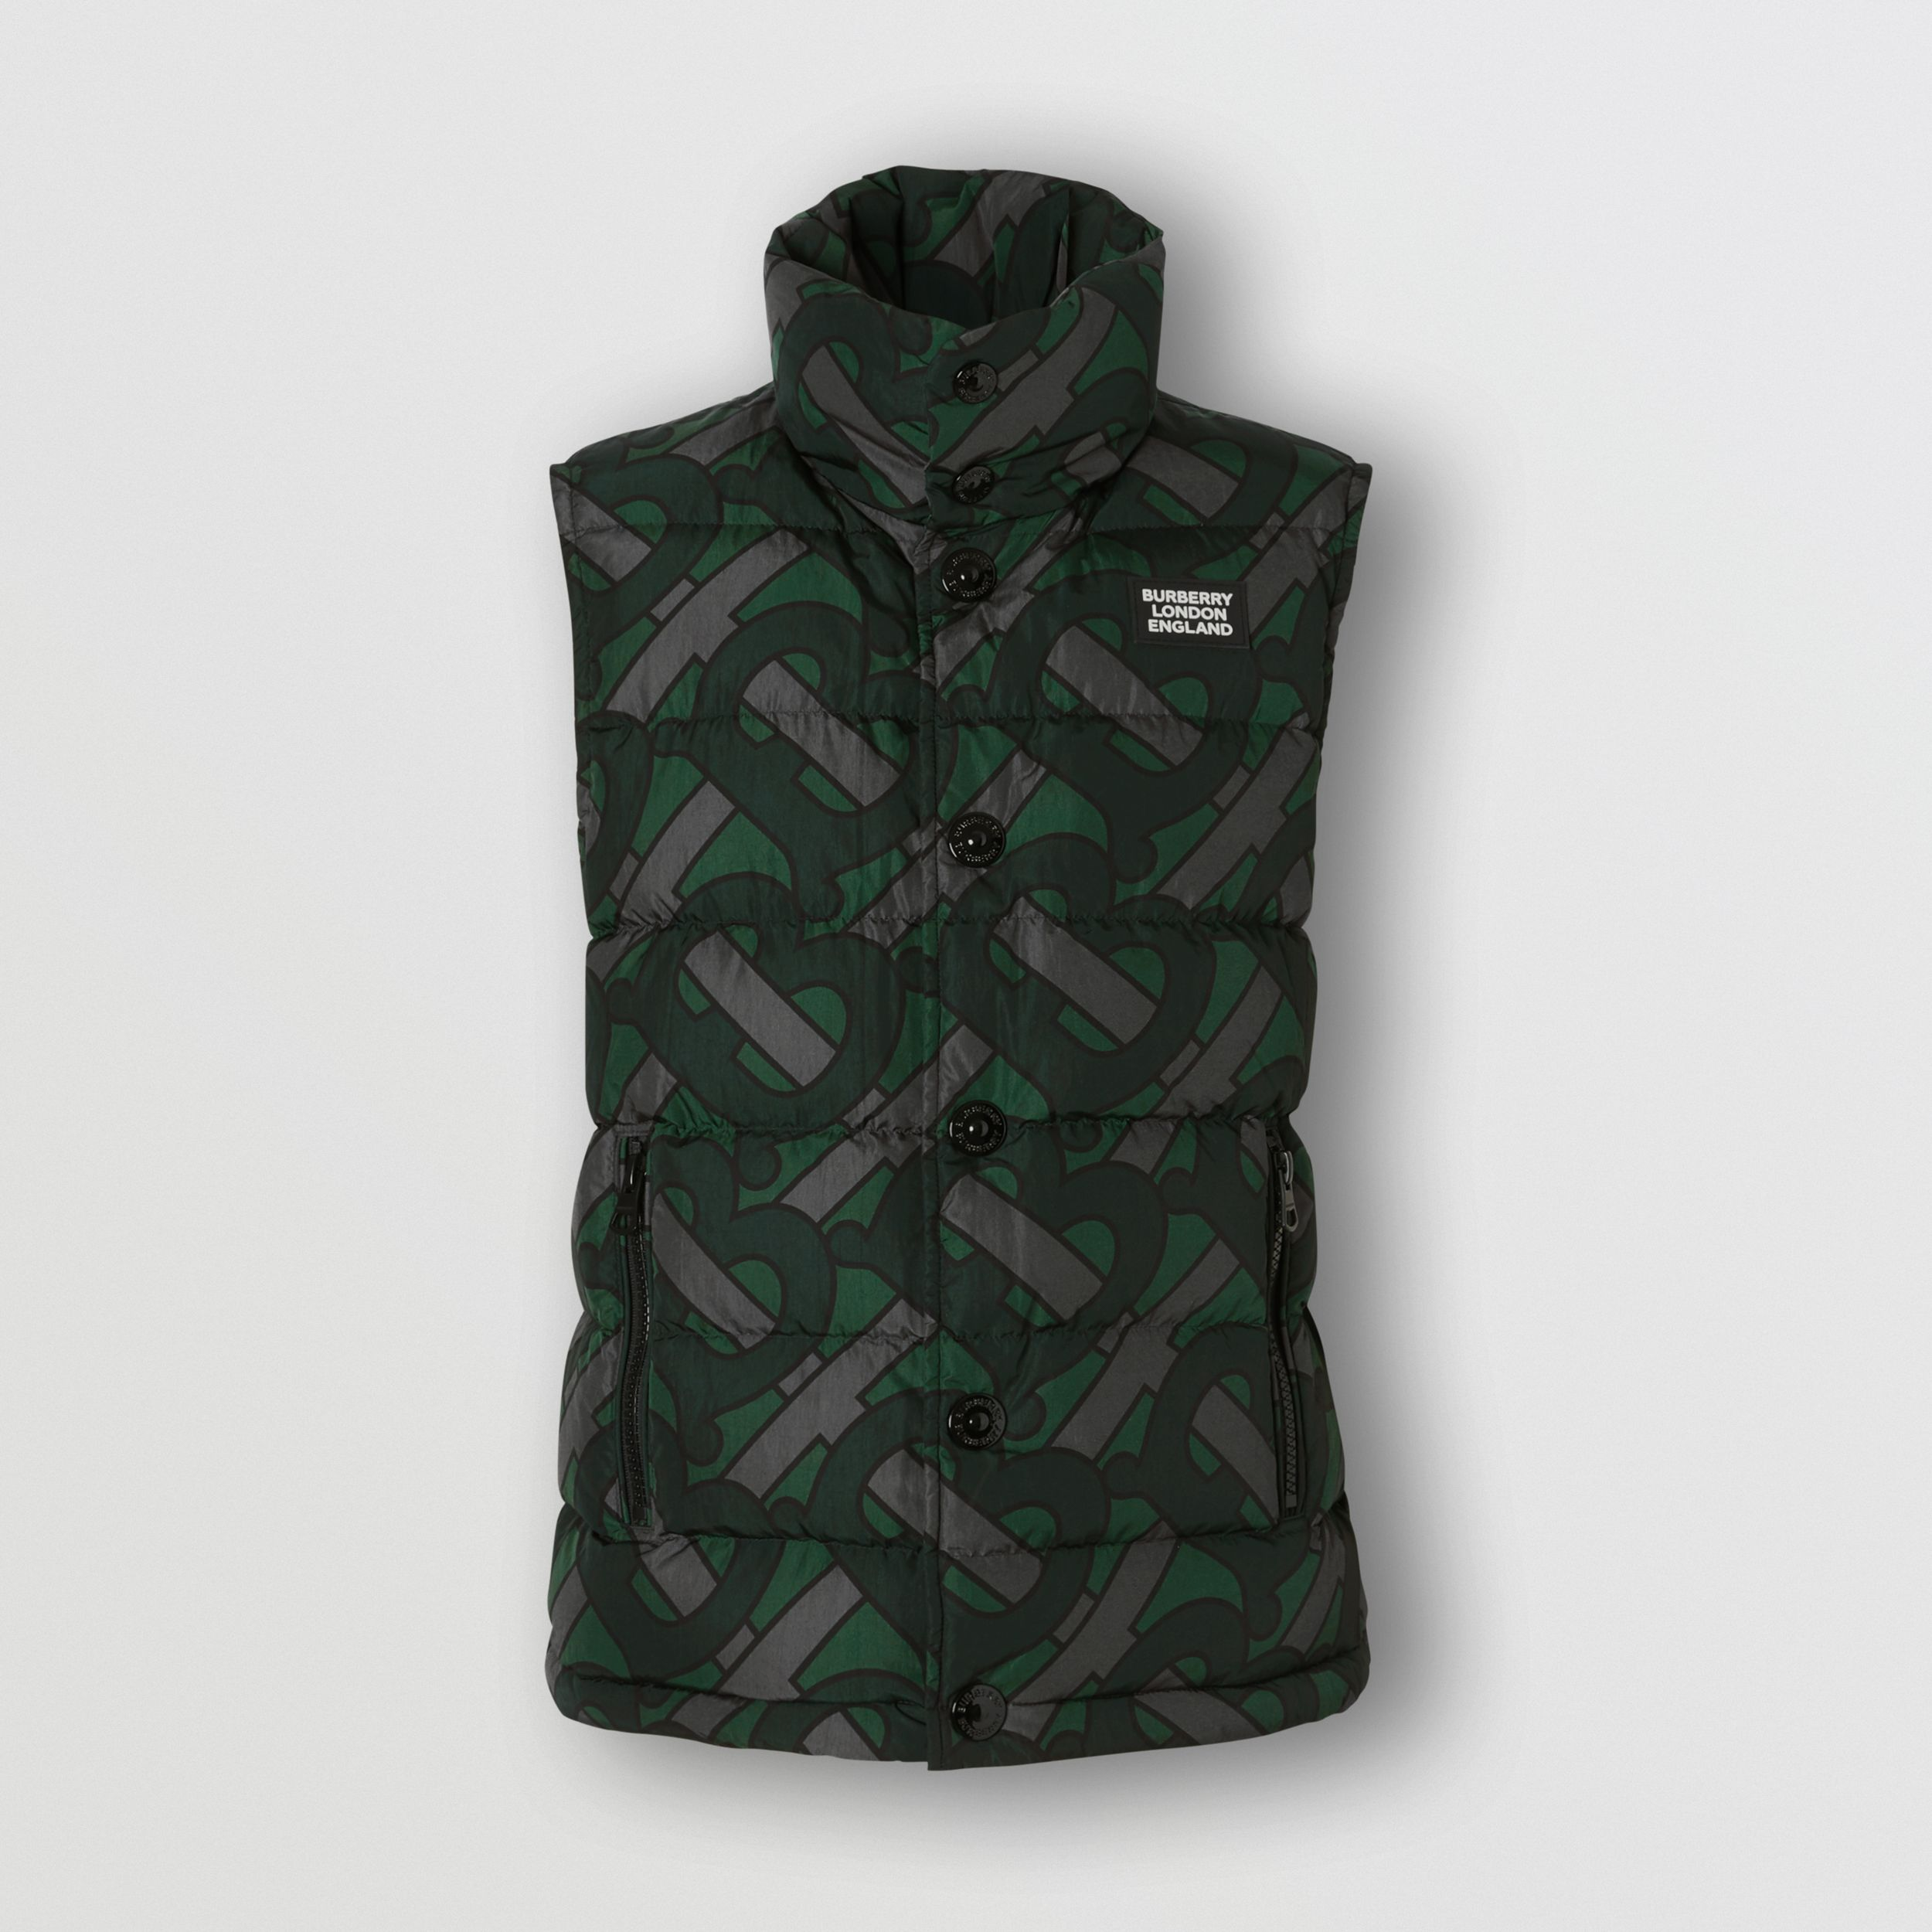 Monogram Print Puffer Gilet in Forest Green | Burberry United States - 1